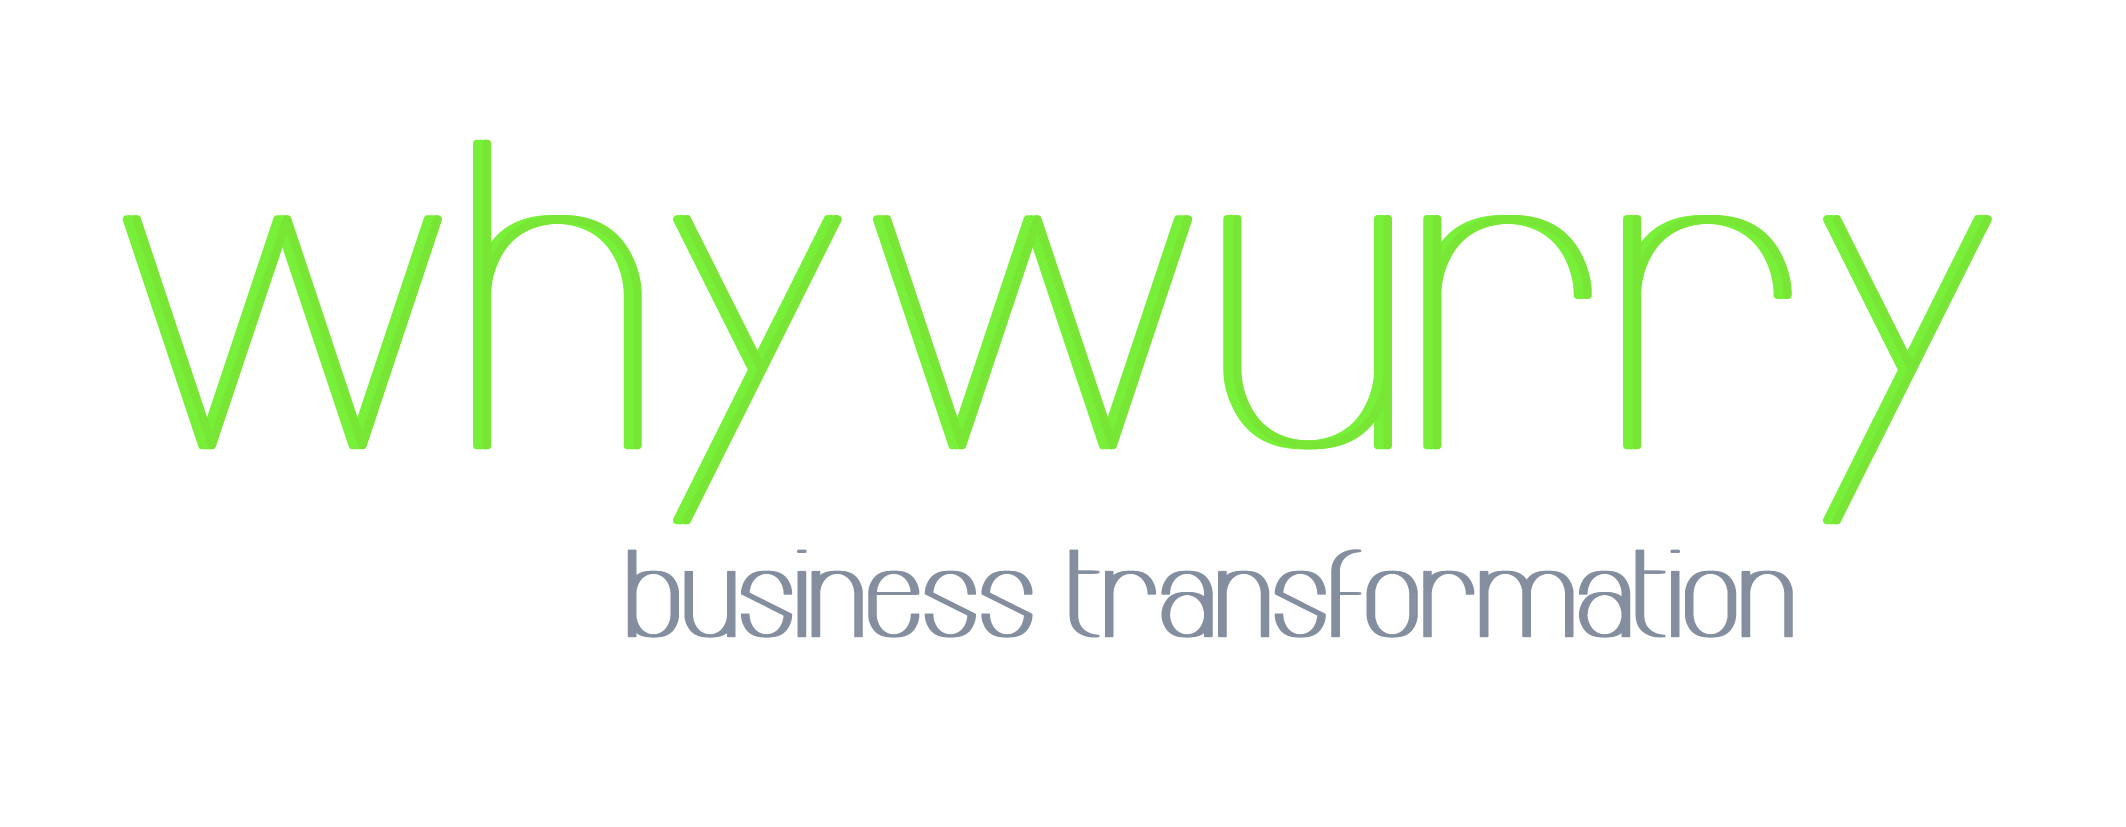 whywurry business transformation 25 Aug